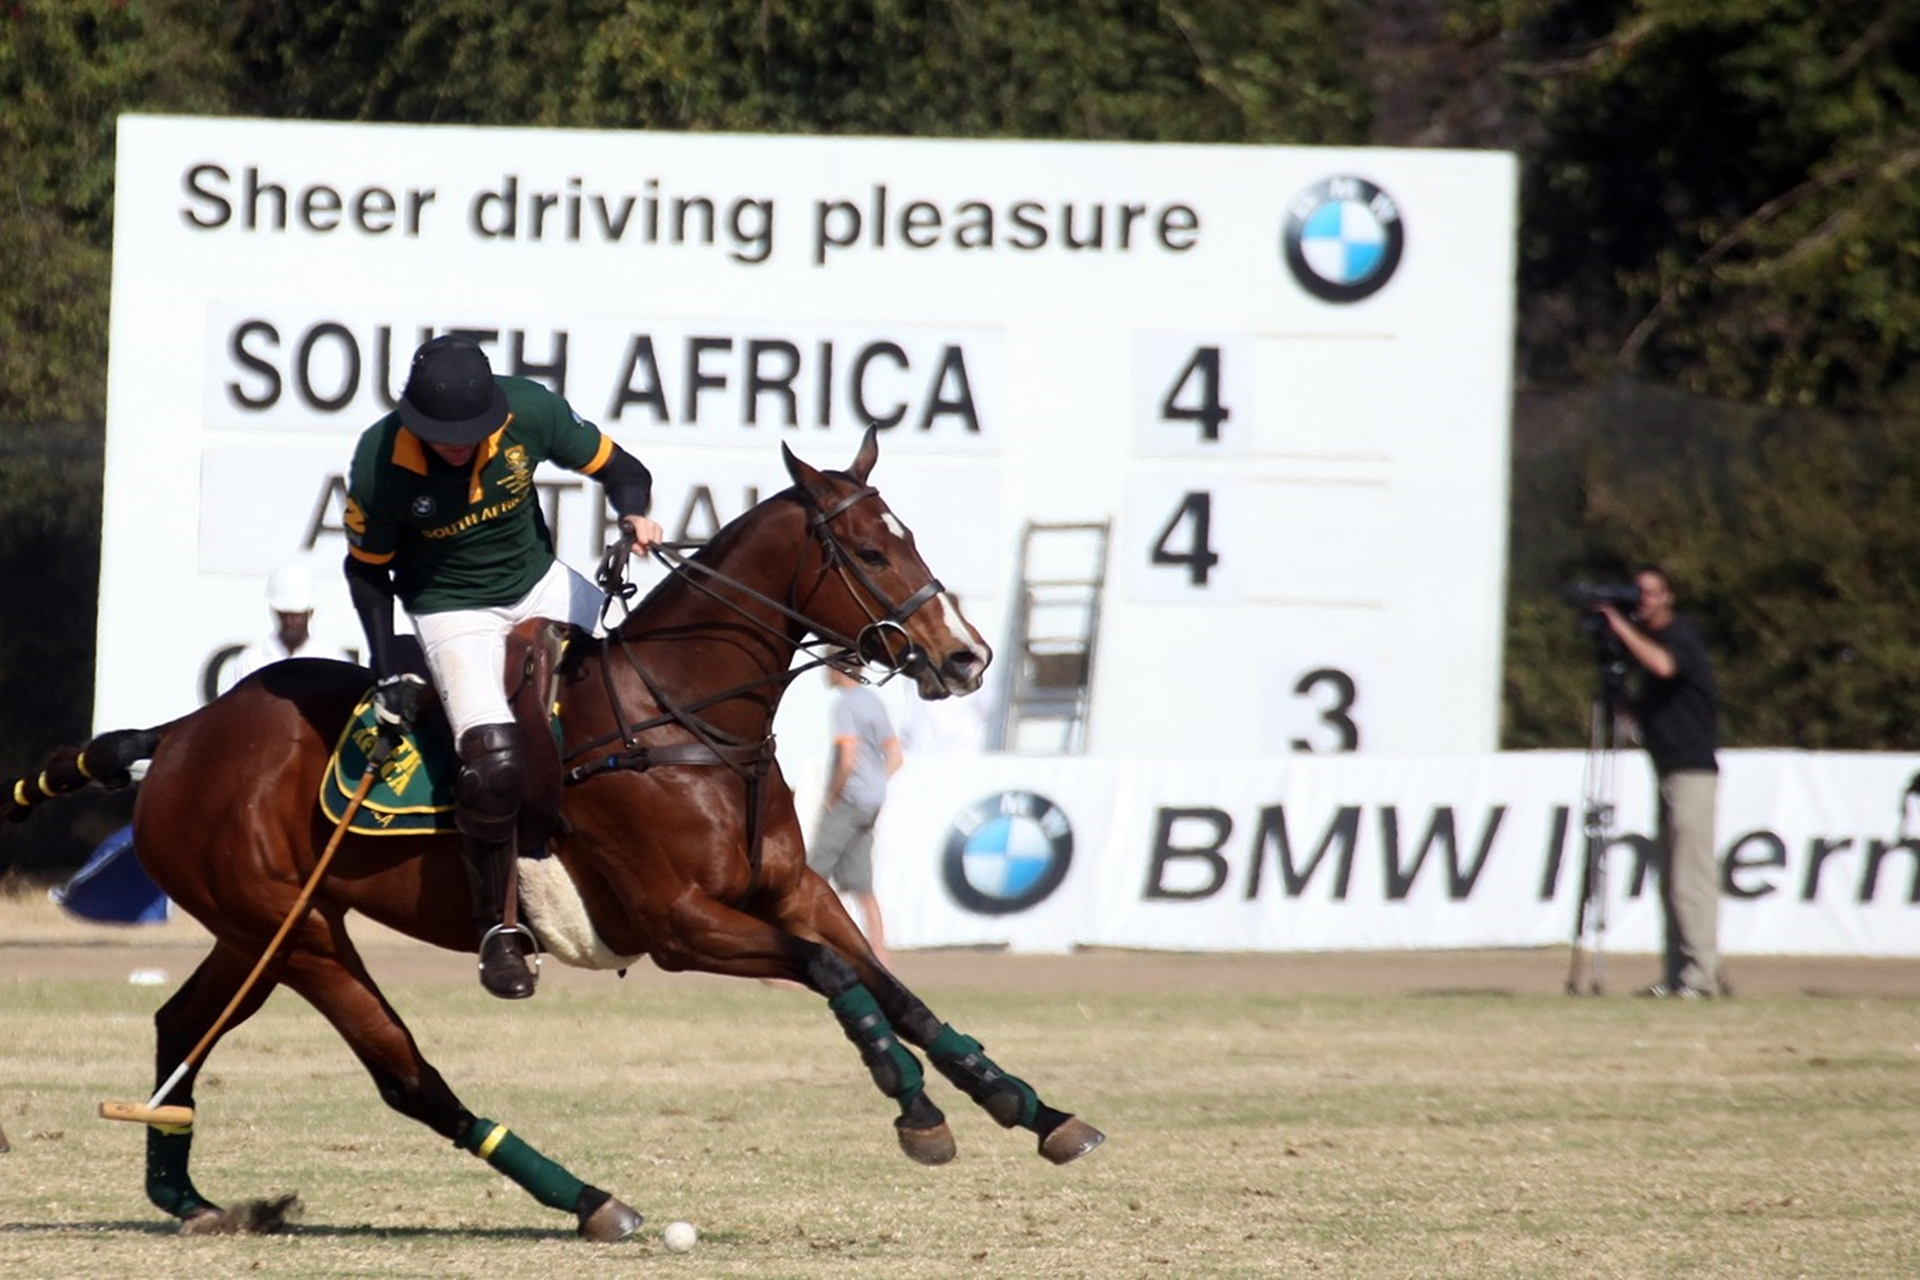 BMW International Polo Series 2012